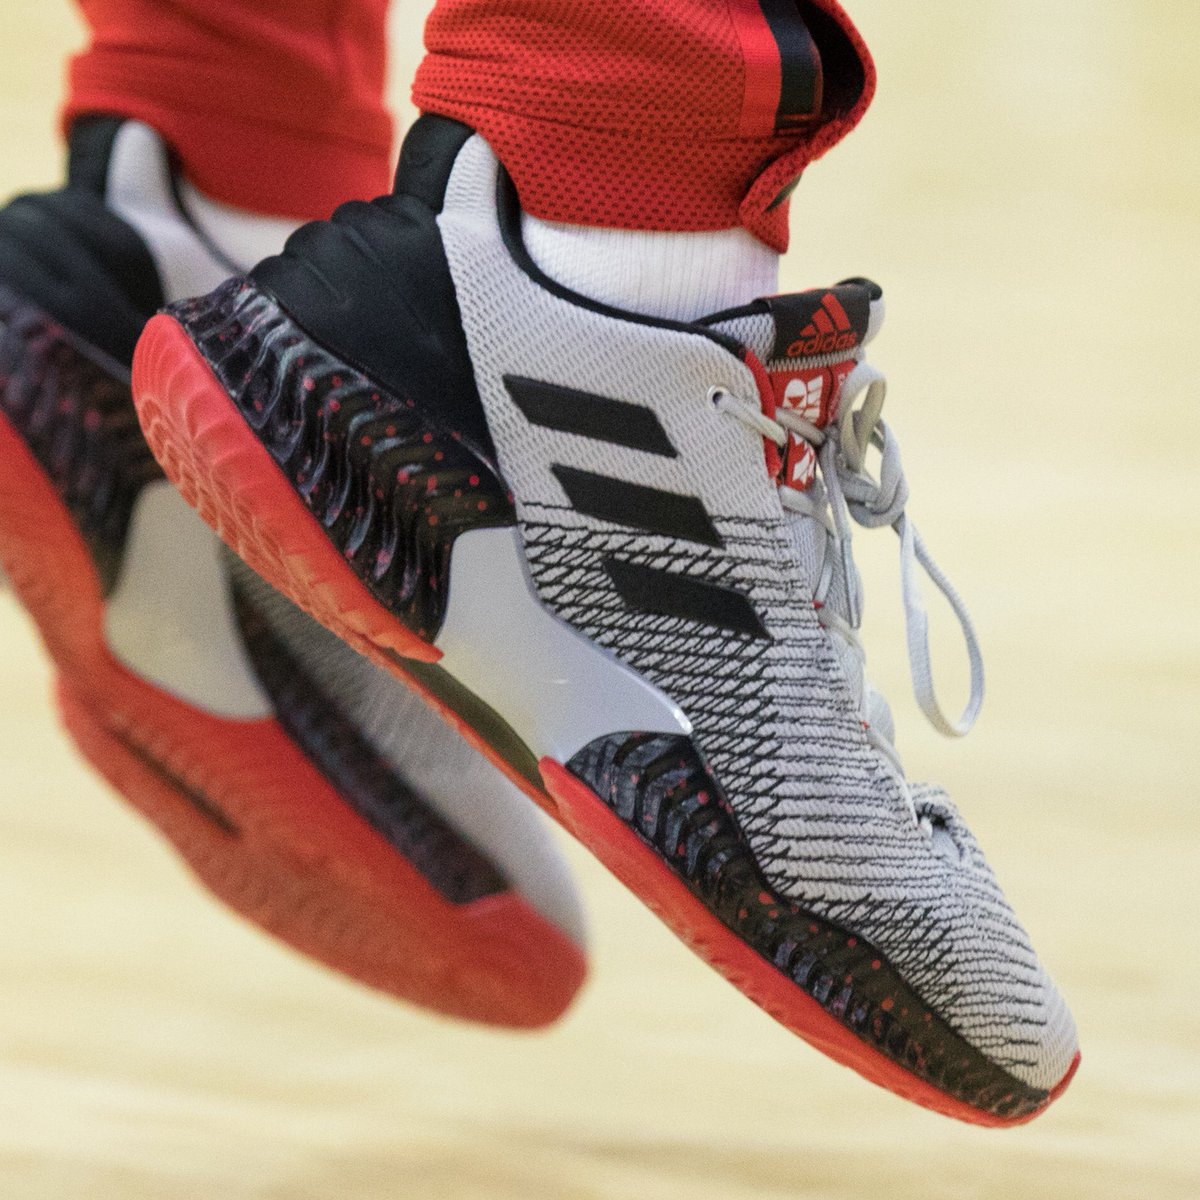 solewatch zachlavine wearing an adidas pro bounce 2018 low pe streicherphoto de388e2a4